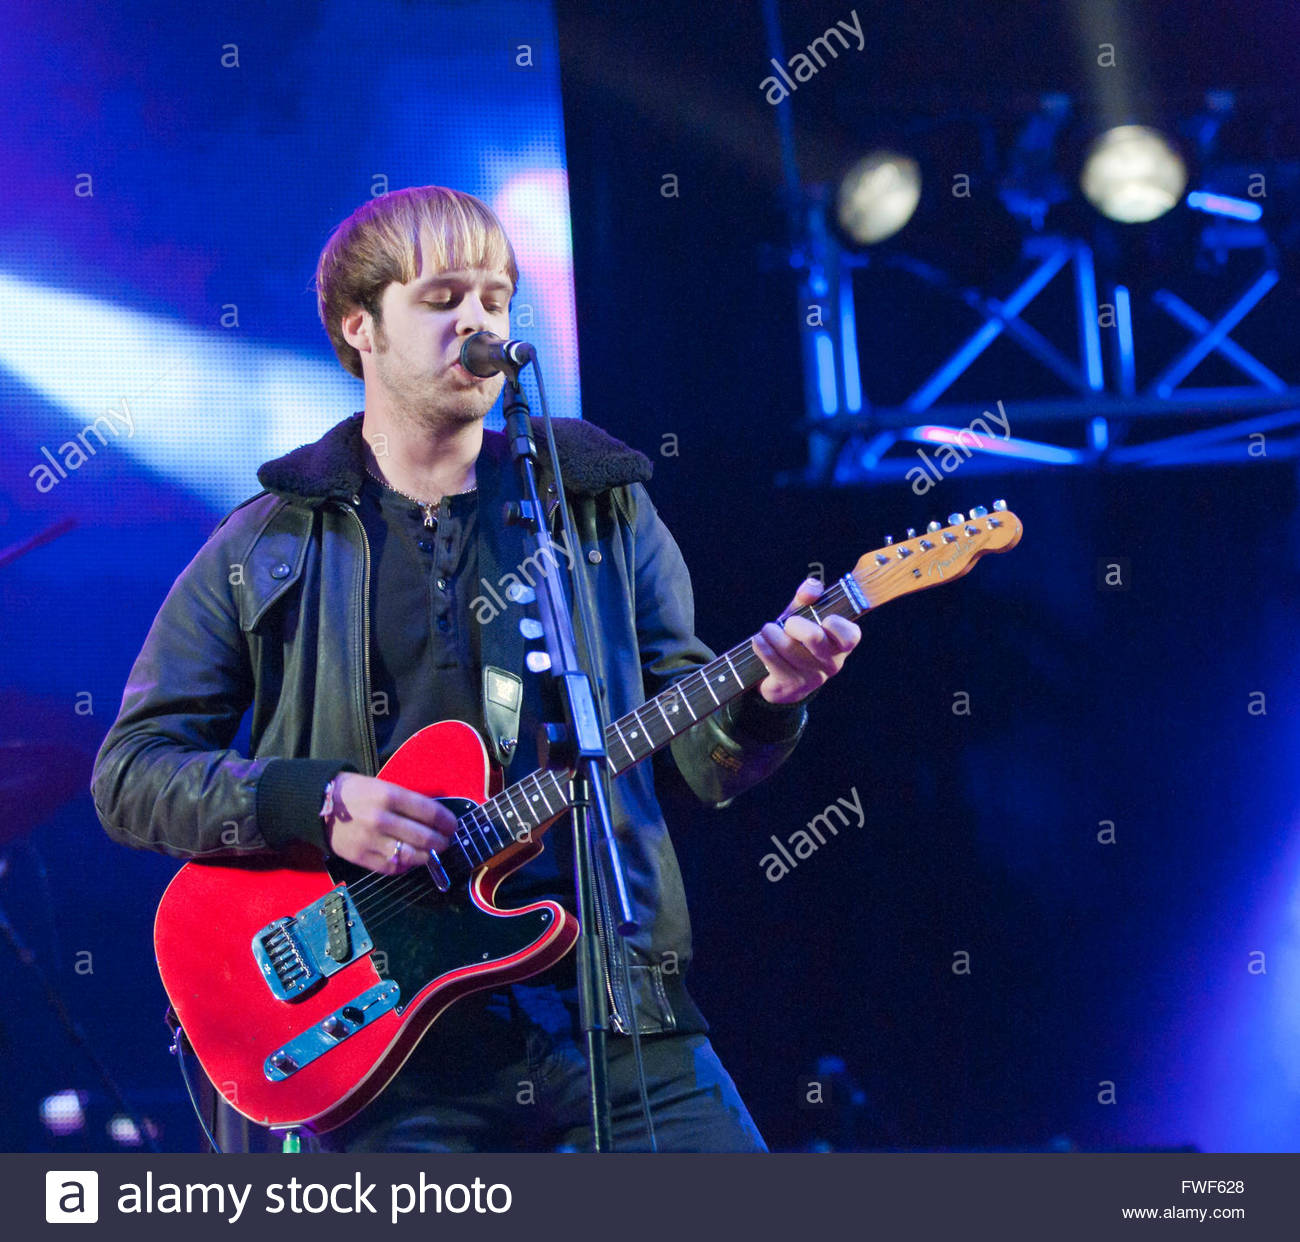 James Skelley of The Coral performing at Fairport's Cropredy festival, UK, 2011. - Stock Image